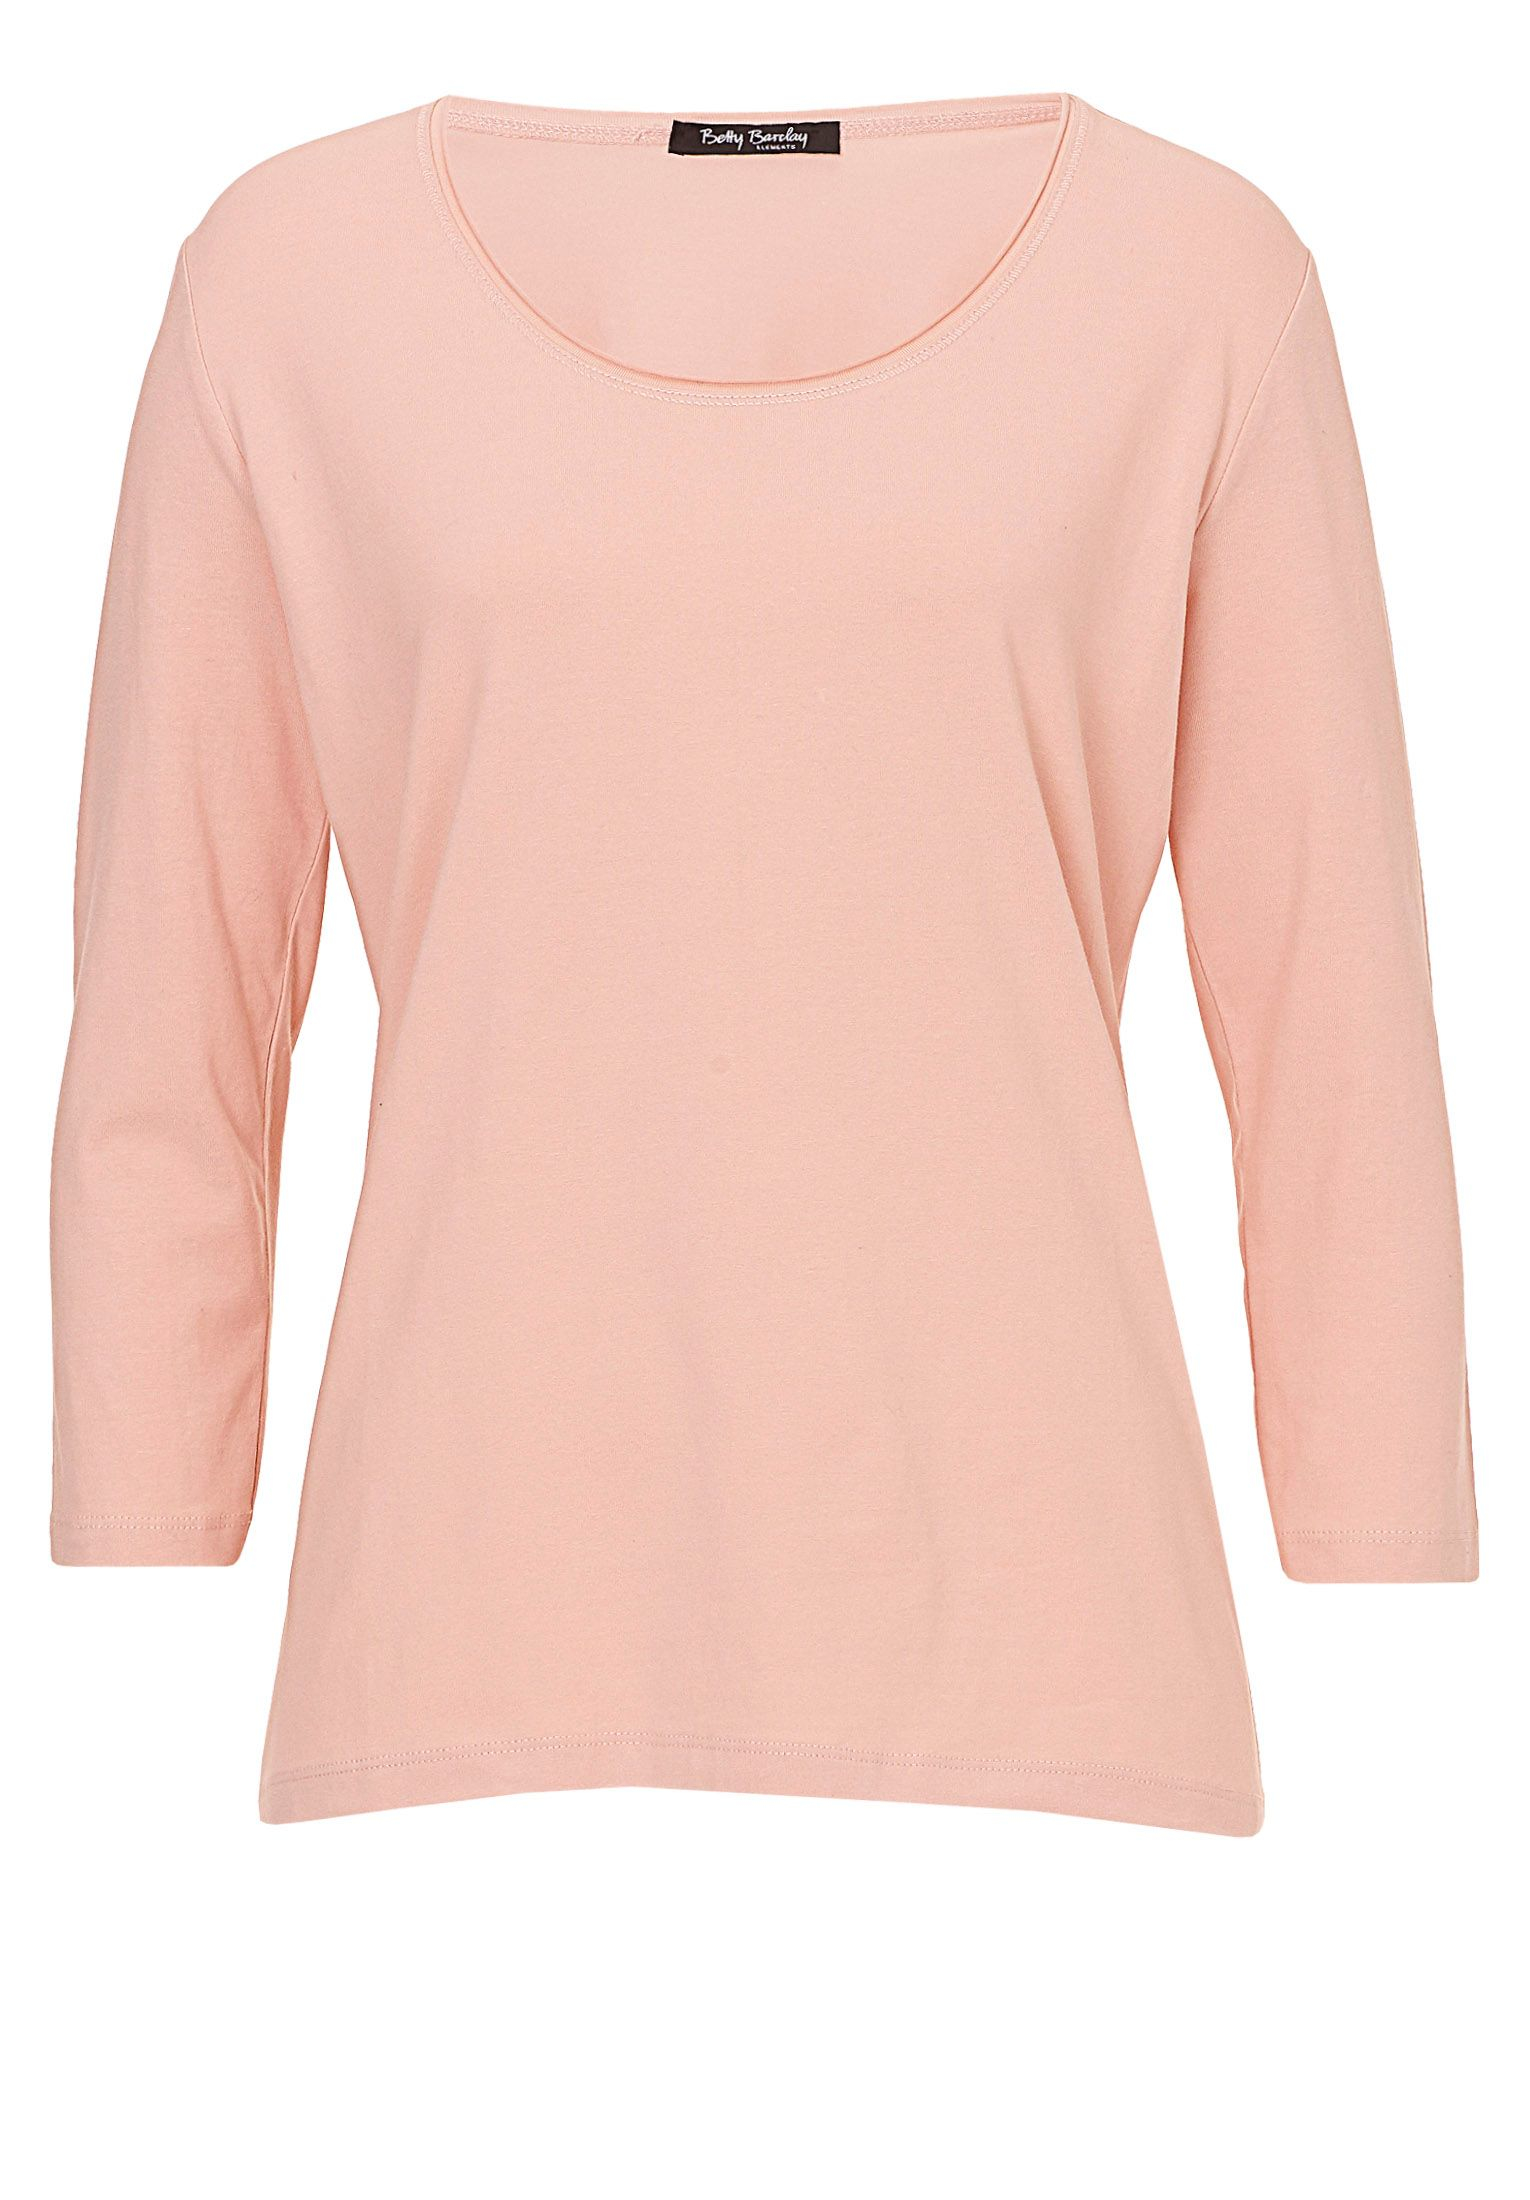 betty co three quarter sleeve t shirt in pink lyst